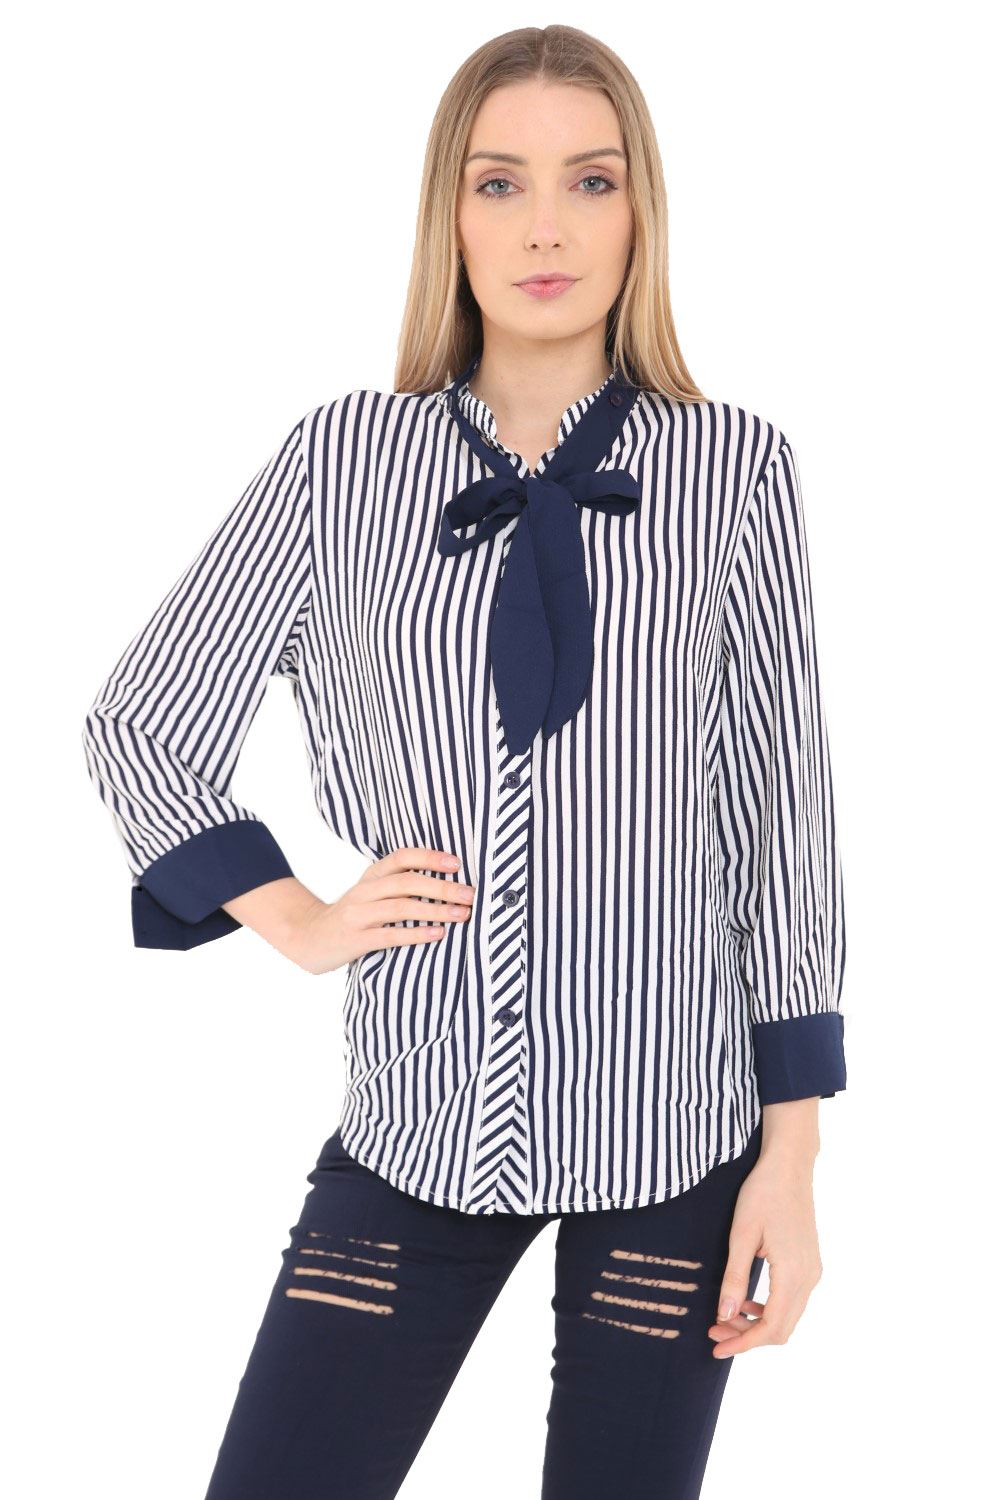 Buy the latest women bow tie shirts cheap shop fashion style with free shipping, and check out our daily updated new arrival women bow tie shirts at gothicphotos.ga